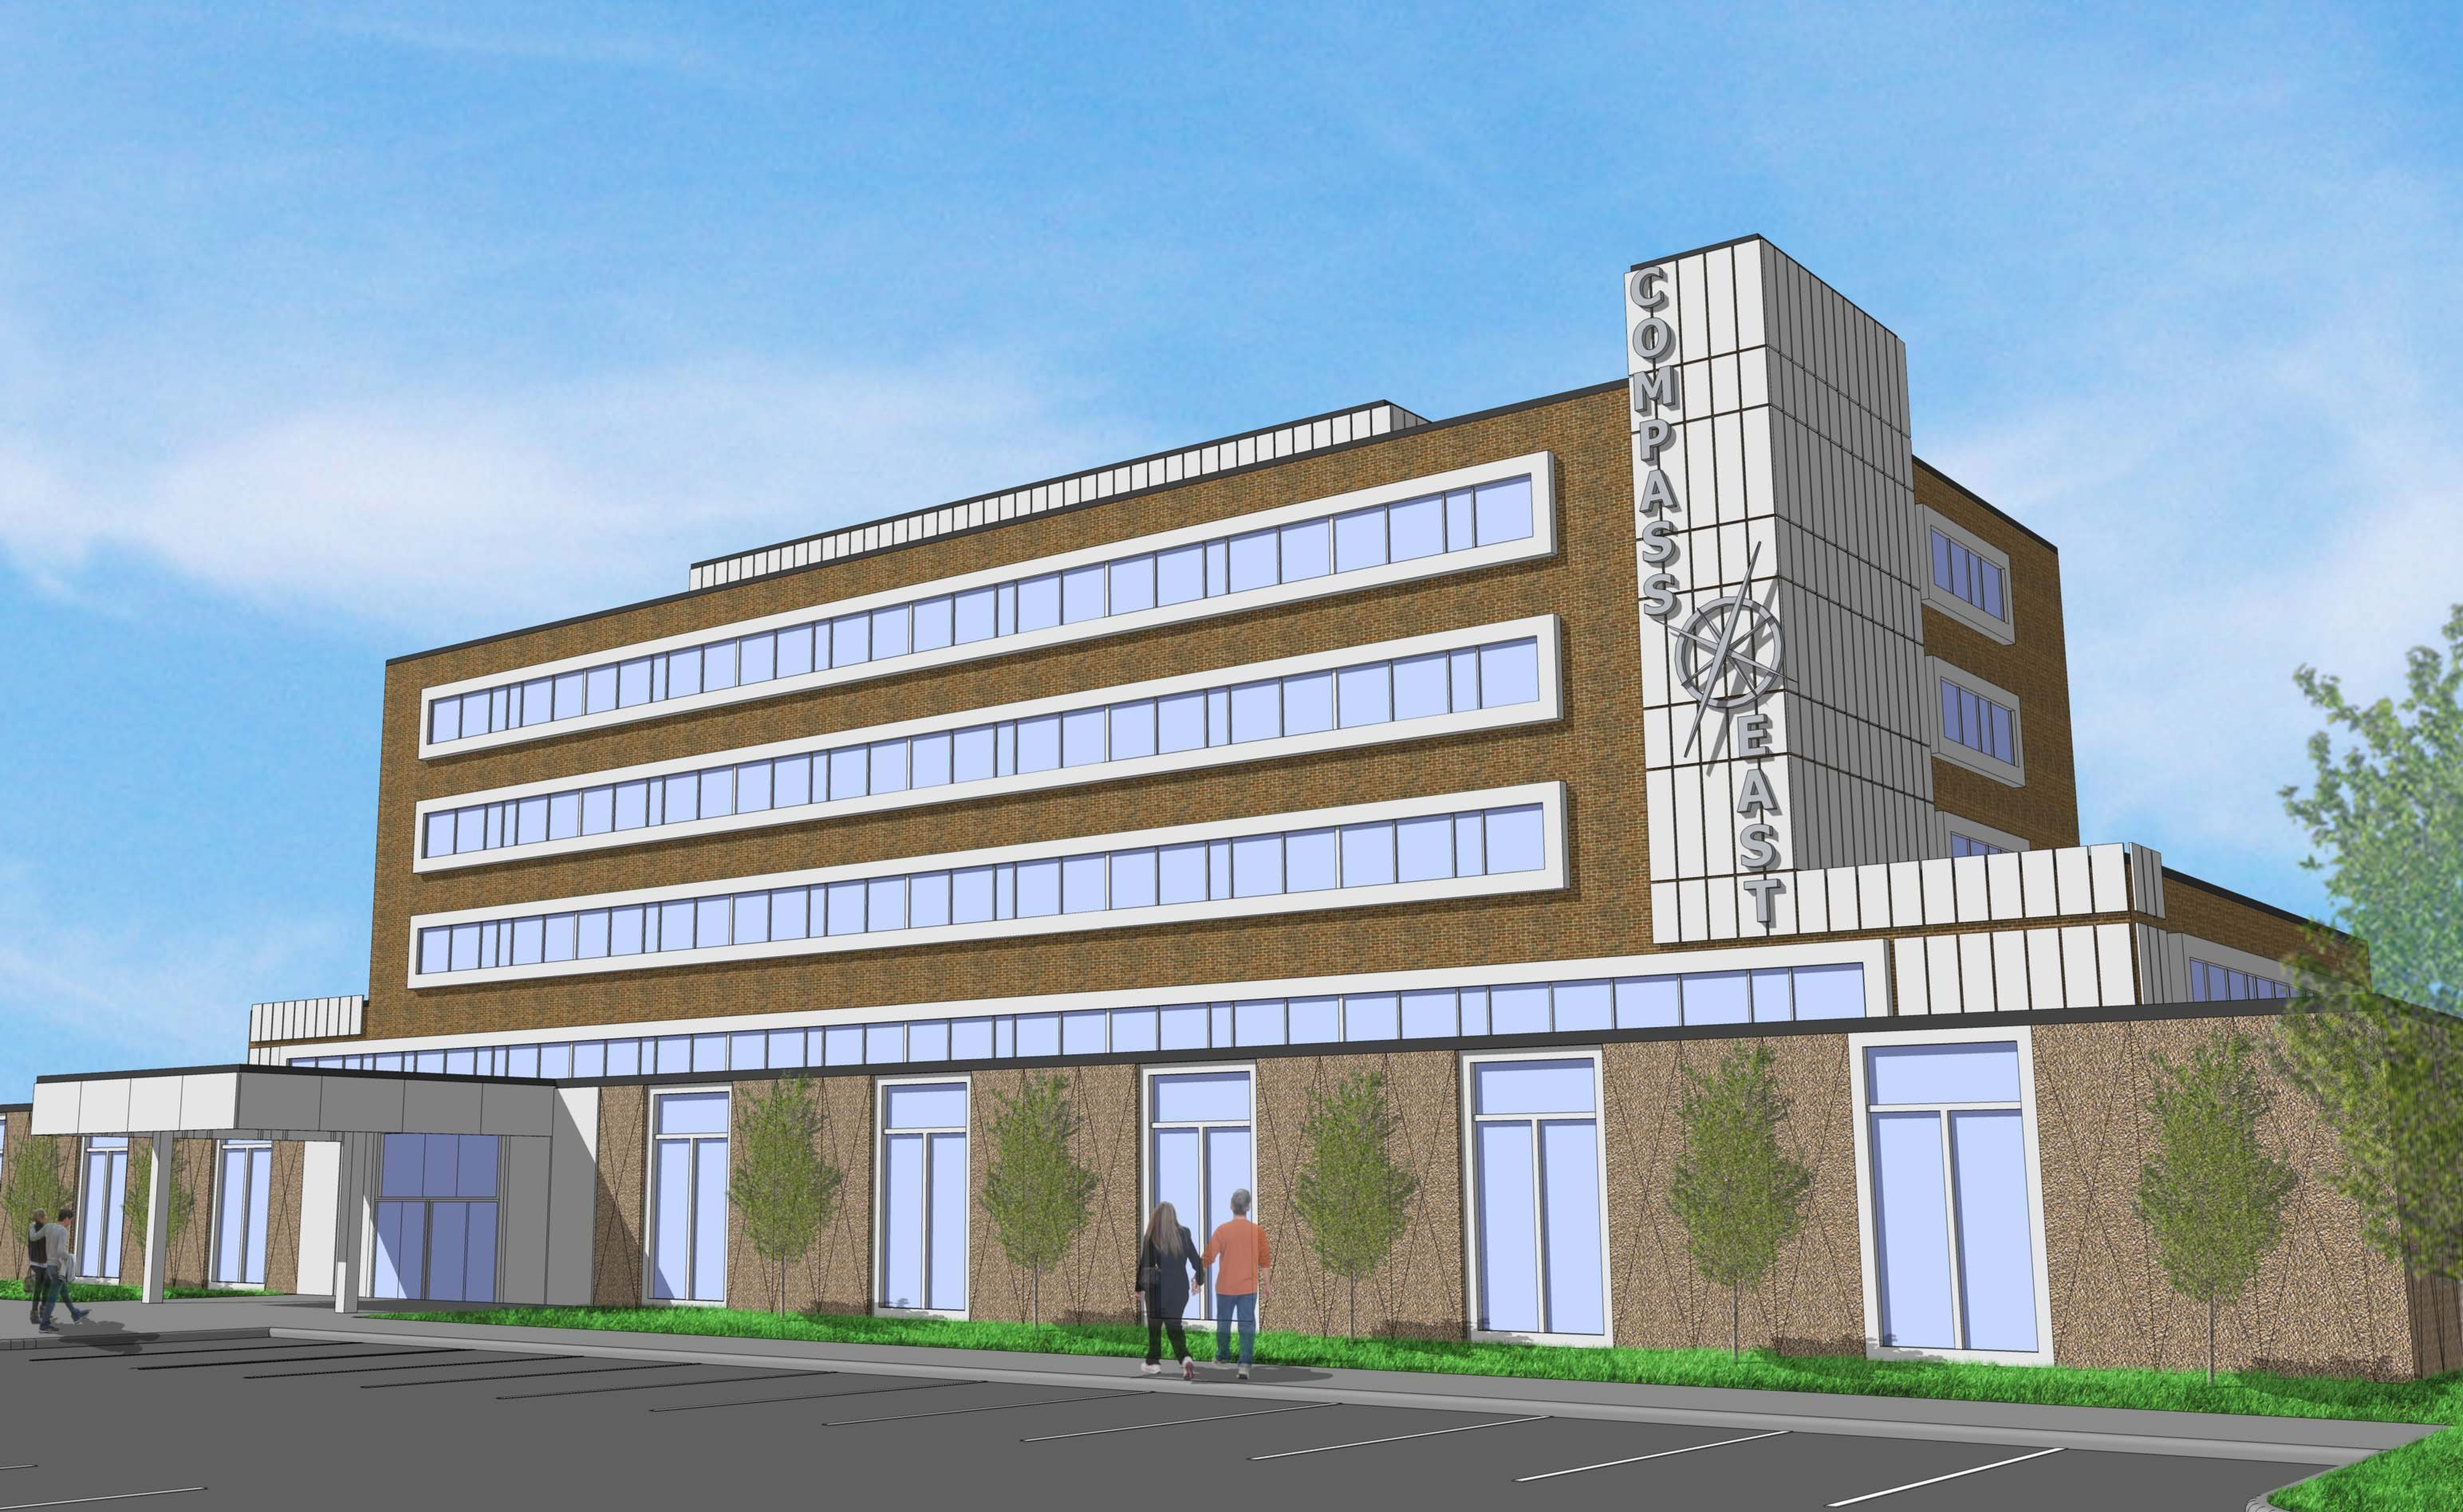 When complete, the former Sheeham Memorial Hospital will reopen as Compass East.